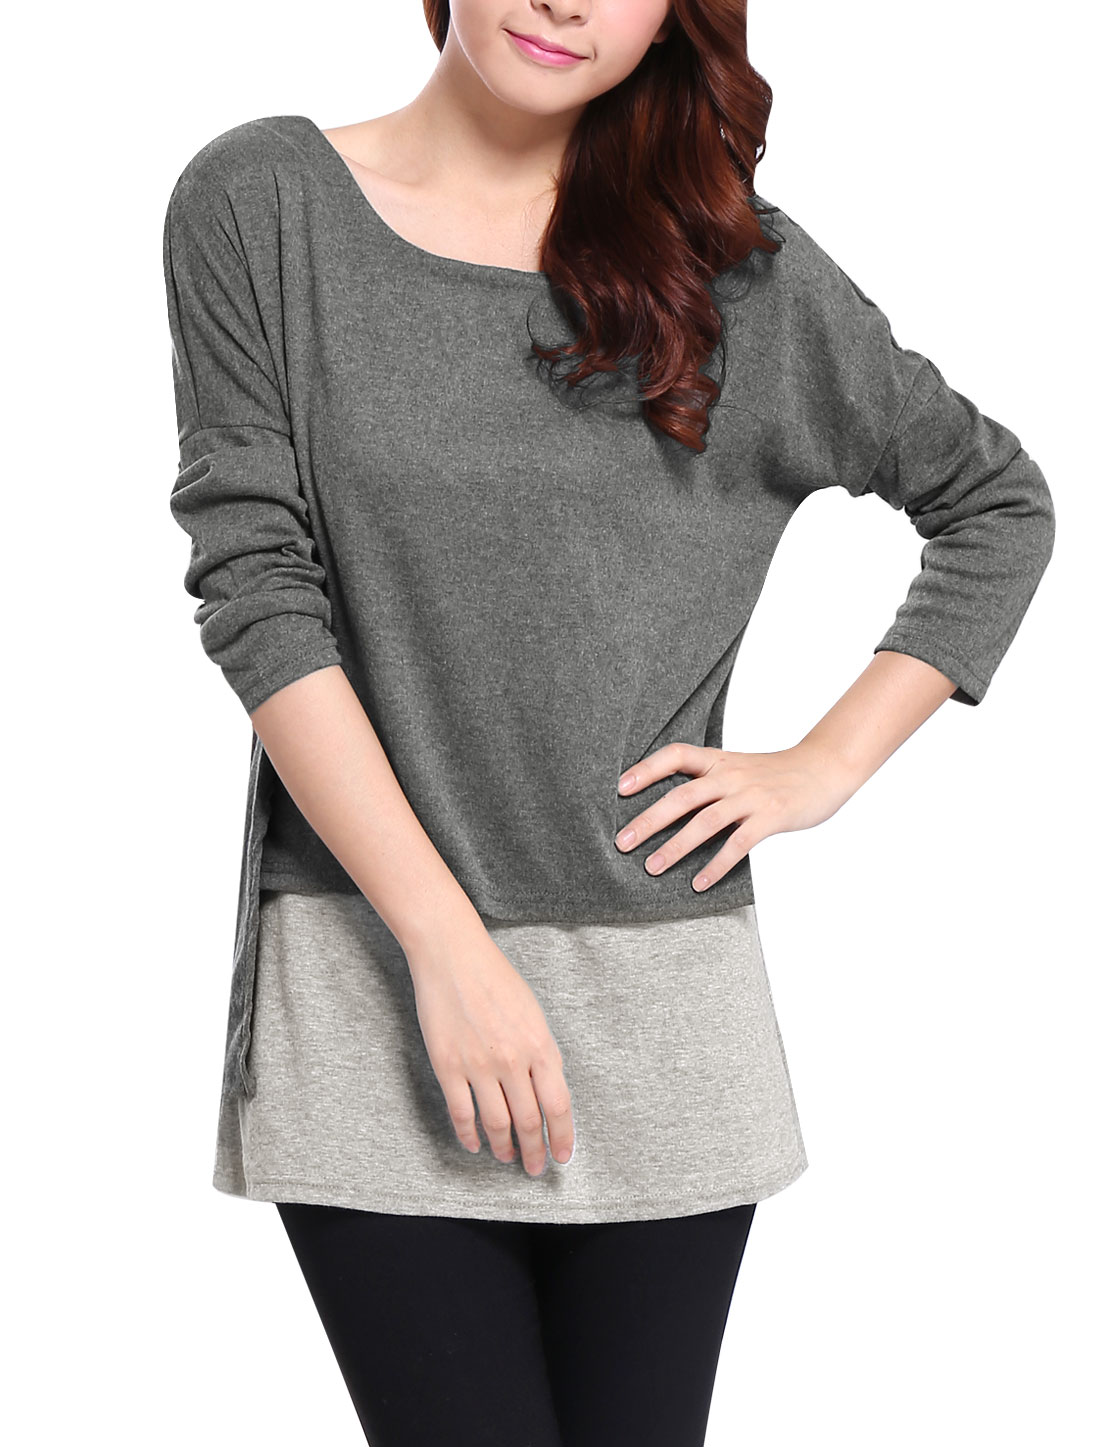 Lady Scoop Neck Long Sleeve Layered Shirts Panel Sweatshirt Gray M